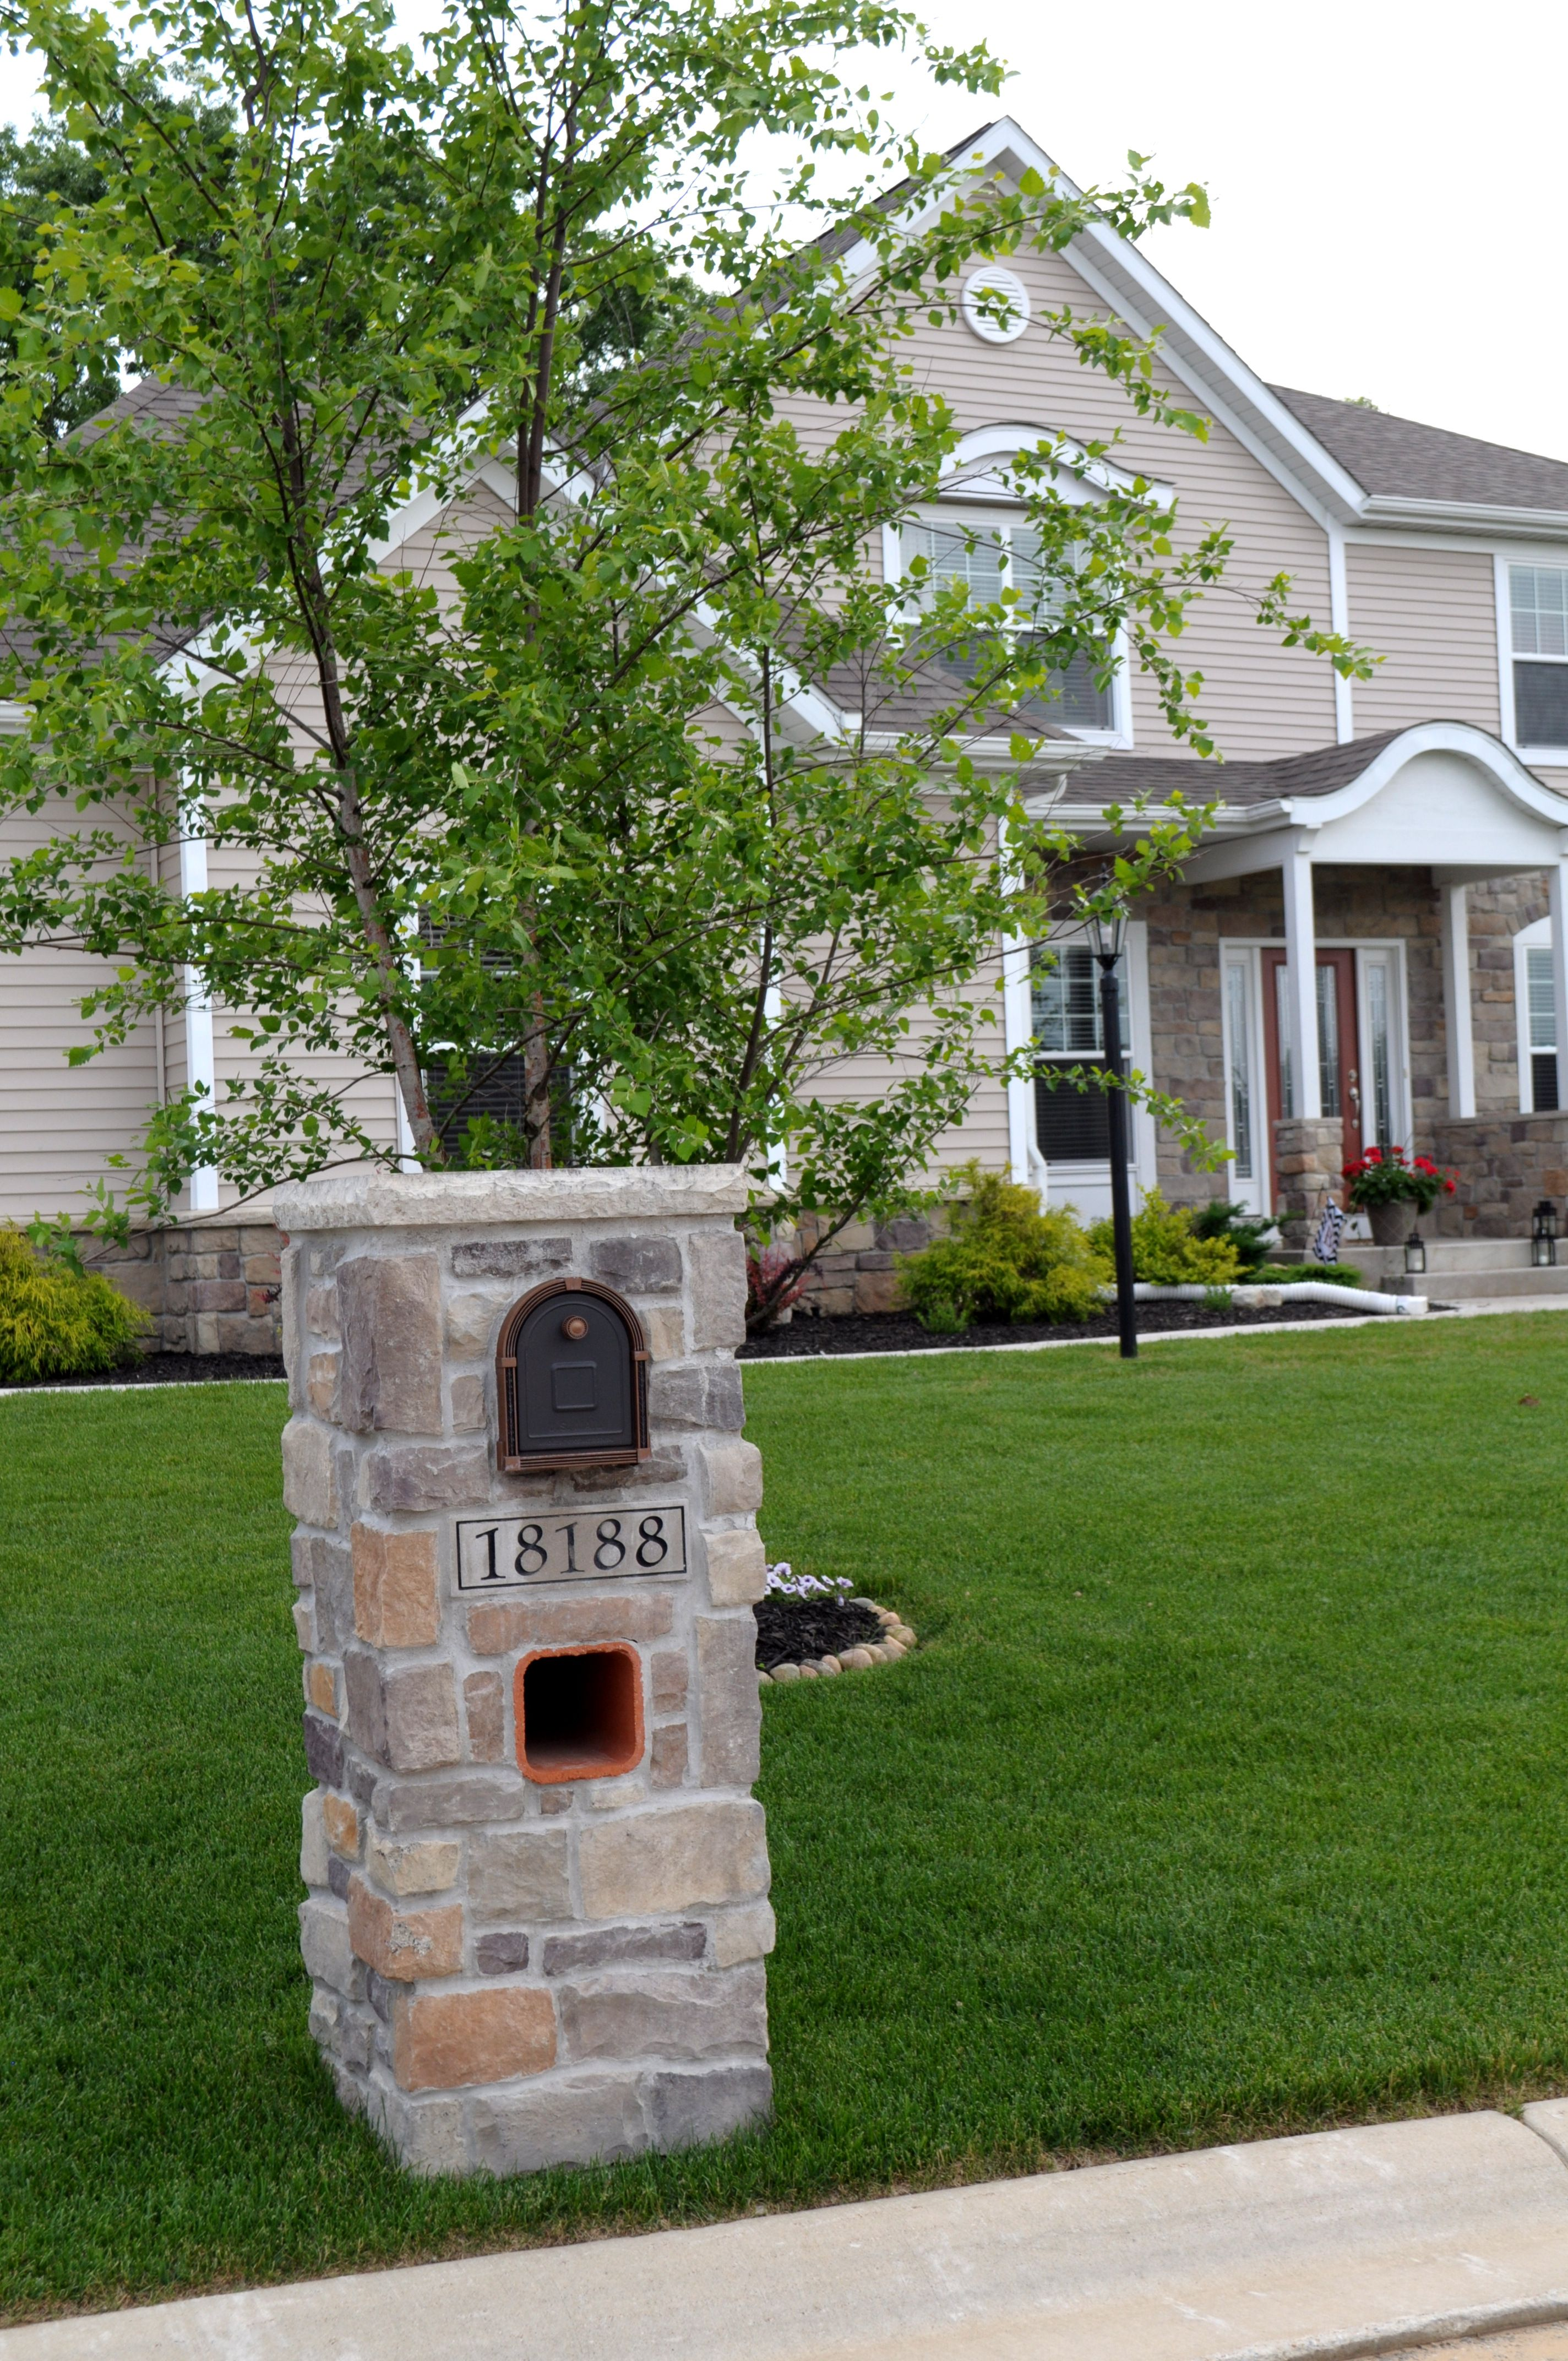 Stoned Mailbox And Exterior Home Monticello Cut Cobble J N Stone Homes